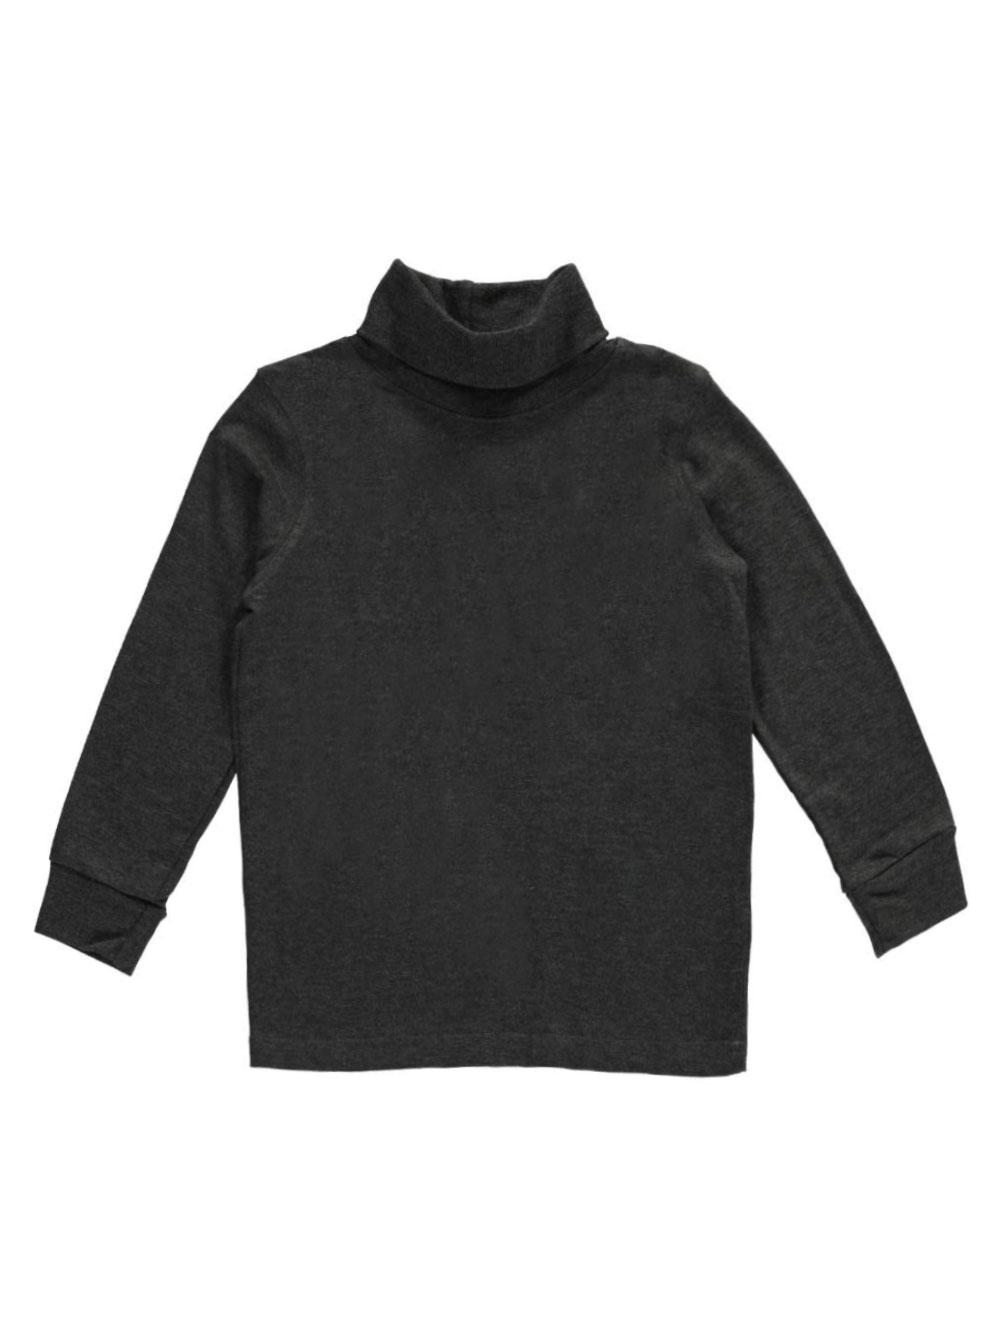 Image of French Toast Little Boys Basic Turtleneck Sizes 4  7  charcoal gray 4